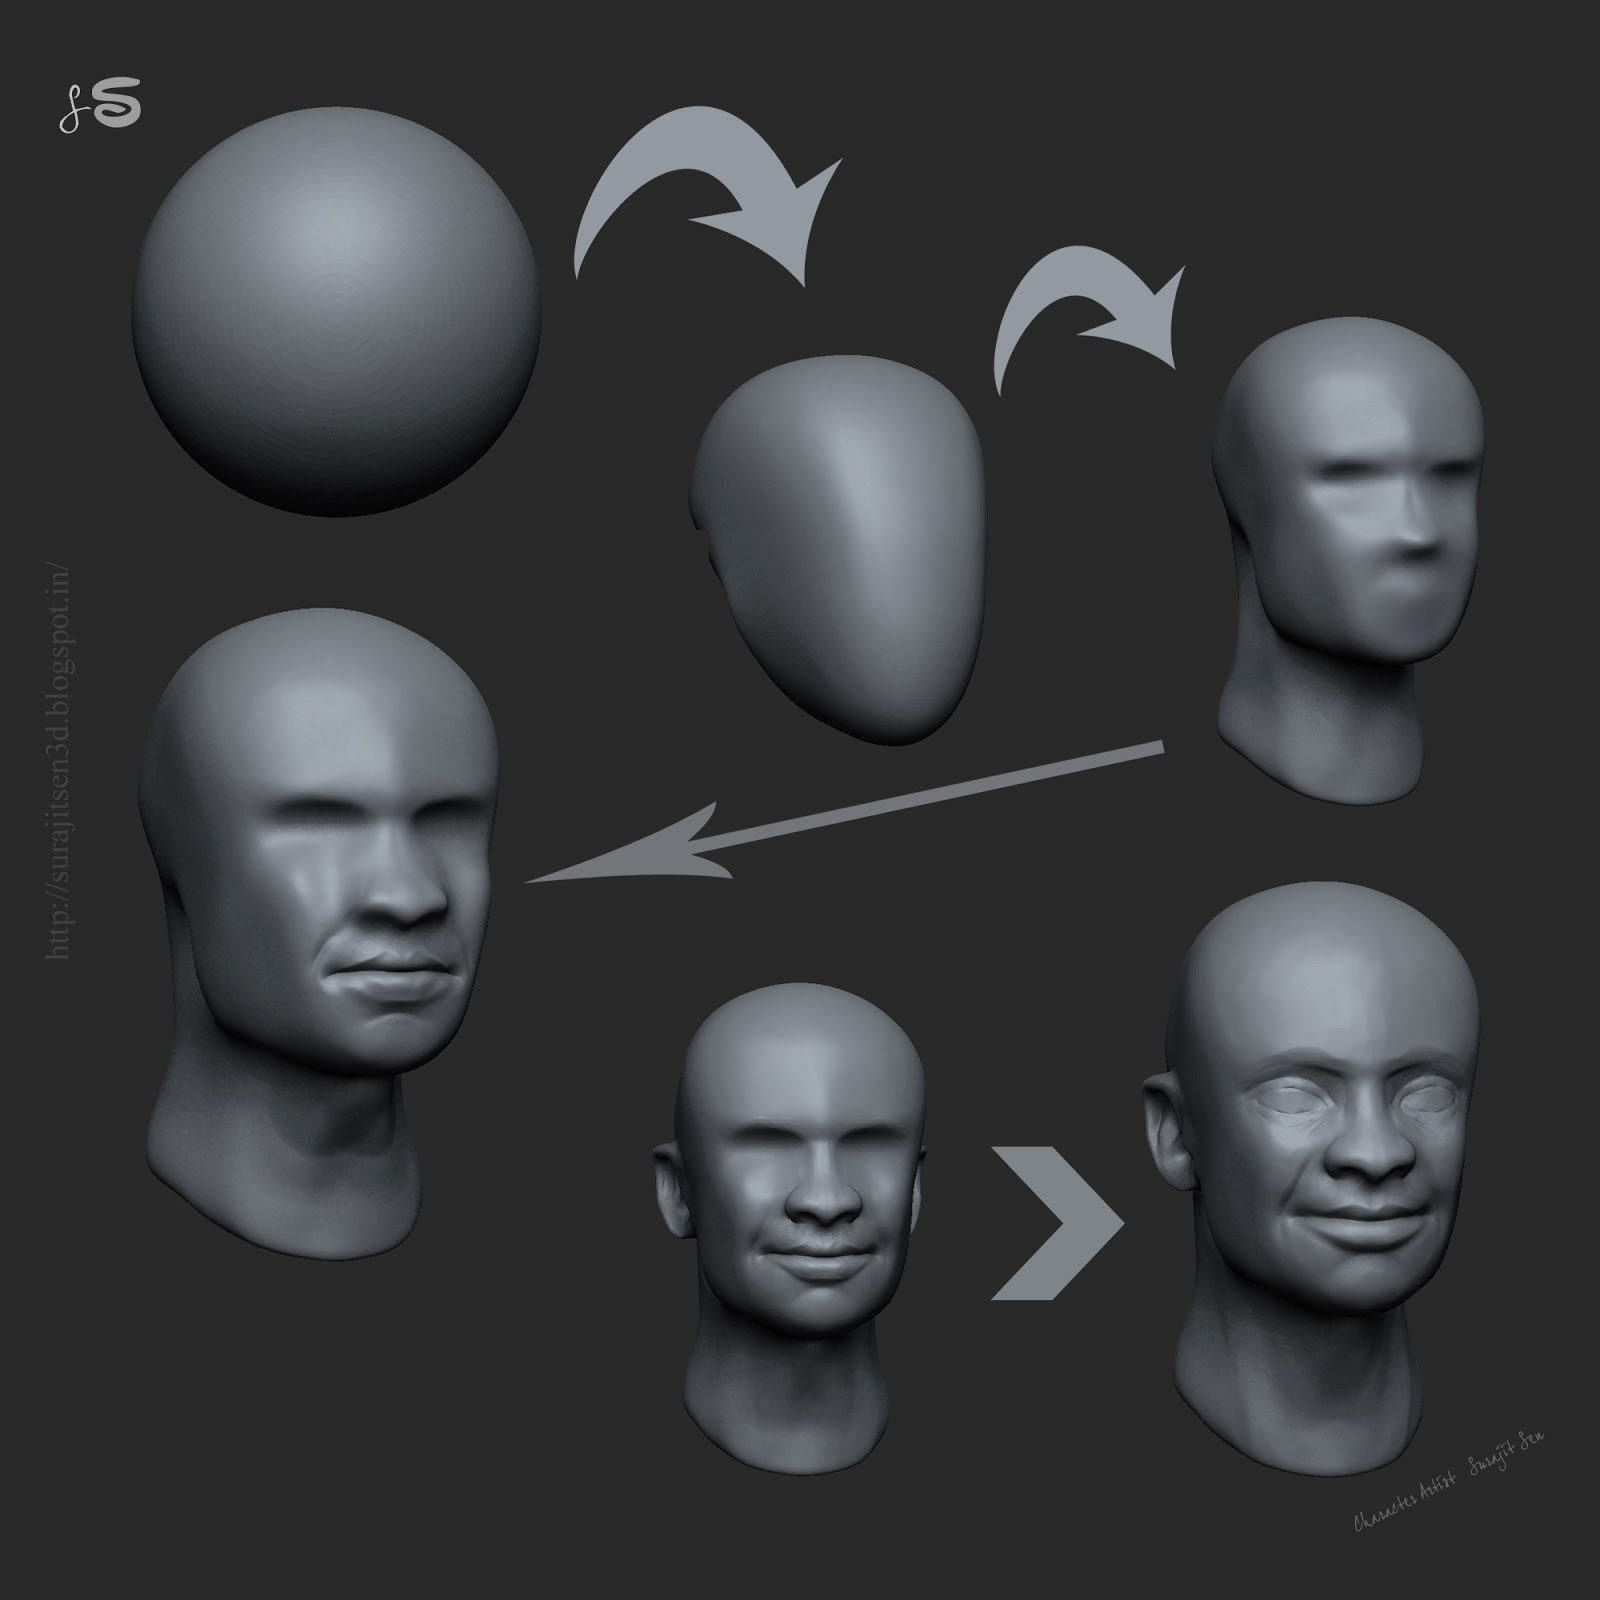 I created the basic blocking clay sculpting in ZBrush. With a sphere I started ,and continued creating the basic form of the head. Please visit my blog  http://surajitsen3d.blogspot.in/2017/01/nubia-cinematic-character-real-time_29.html